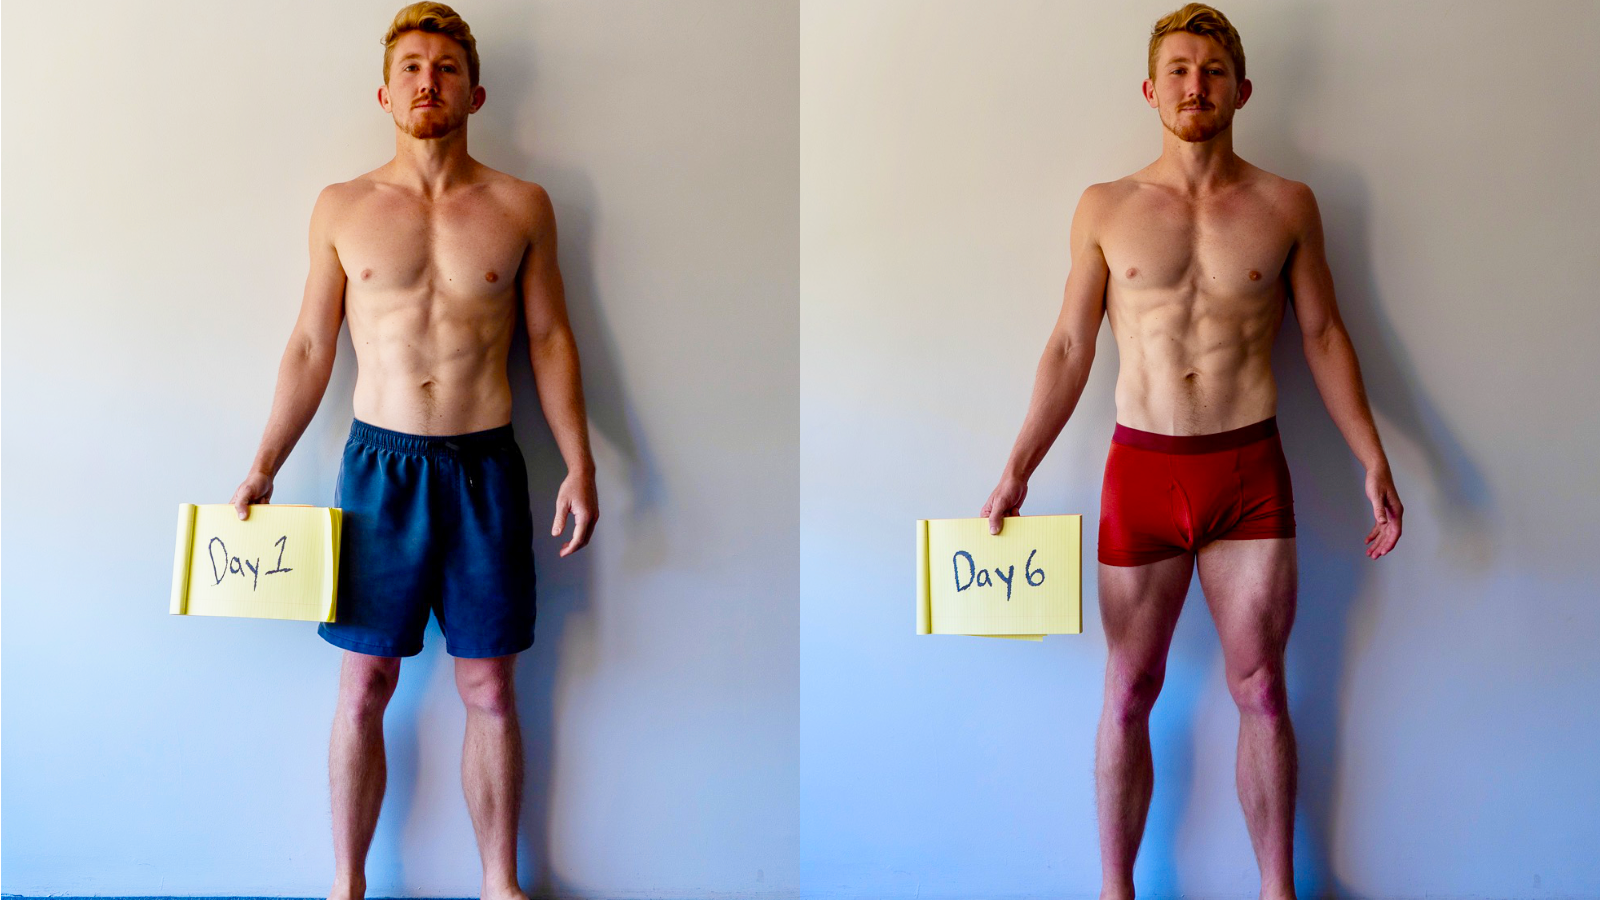 comparison photo of day 1 and day 6 of the fast